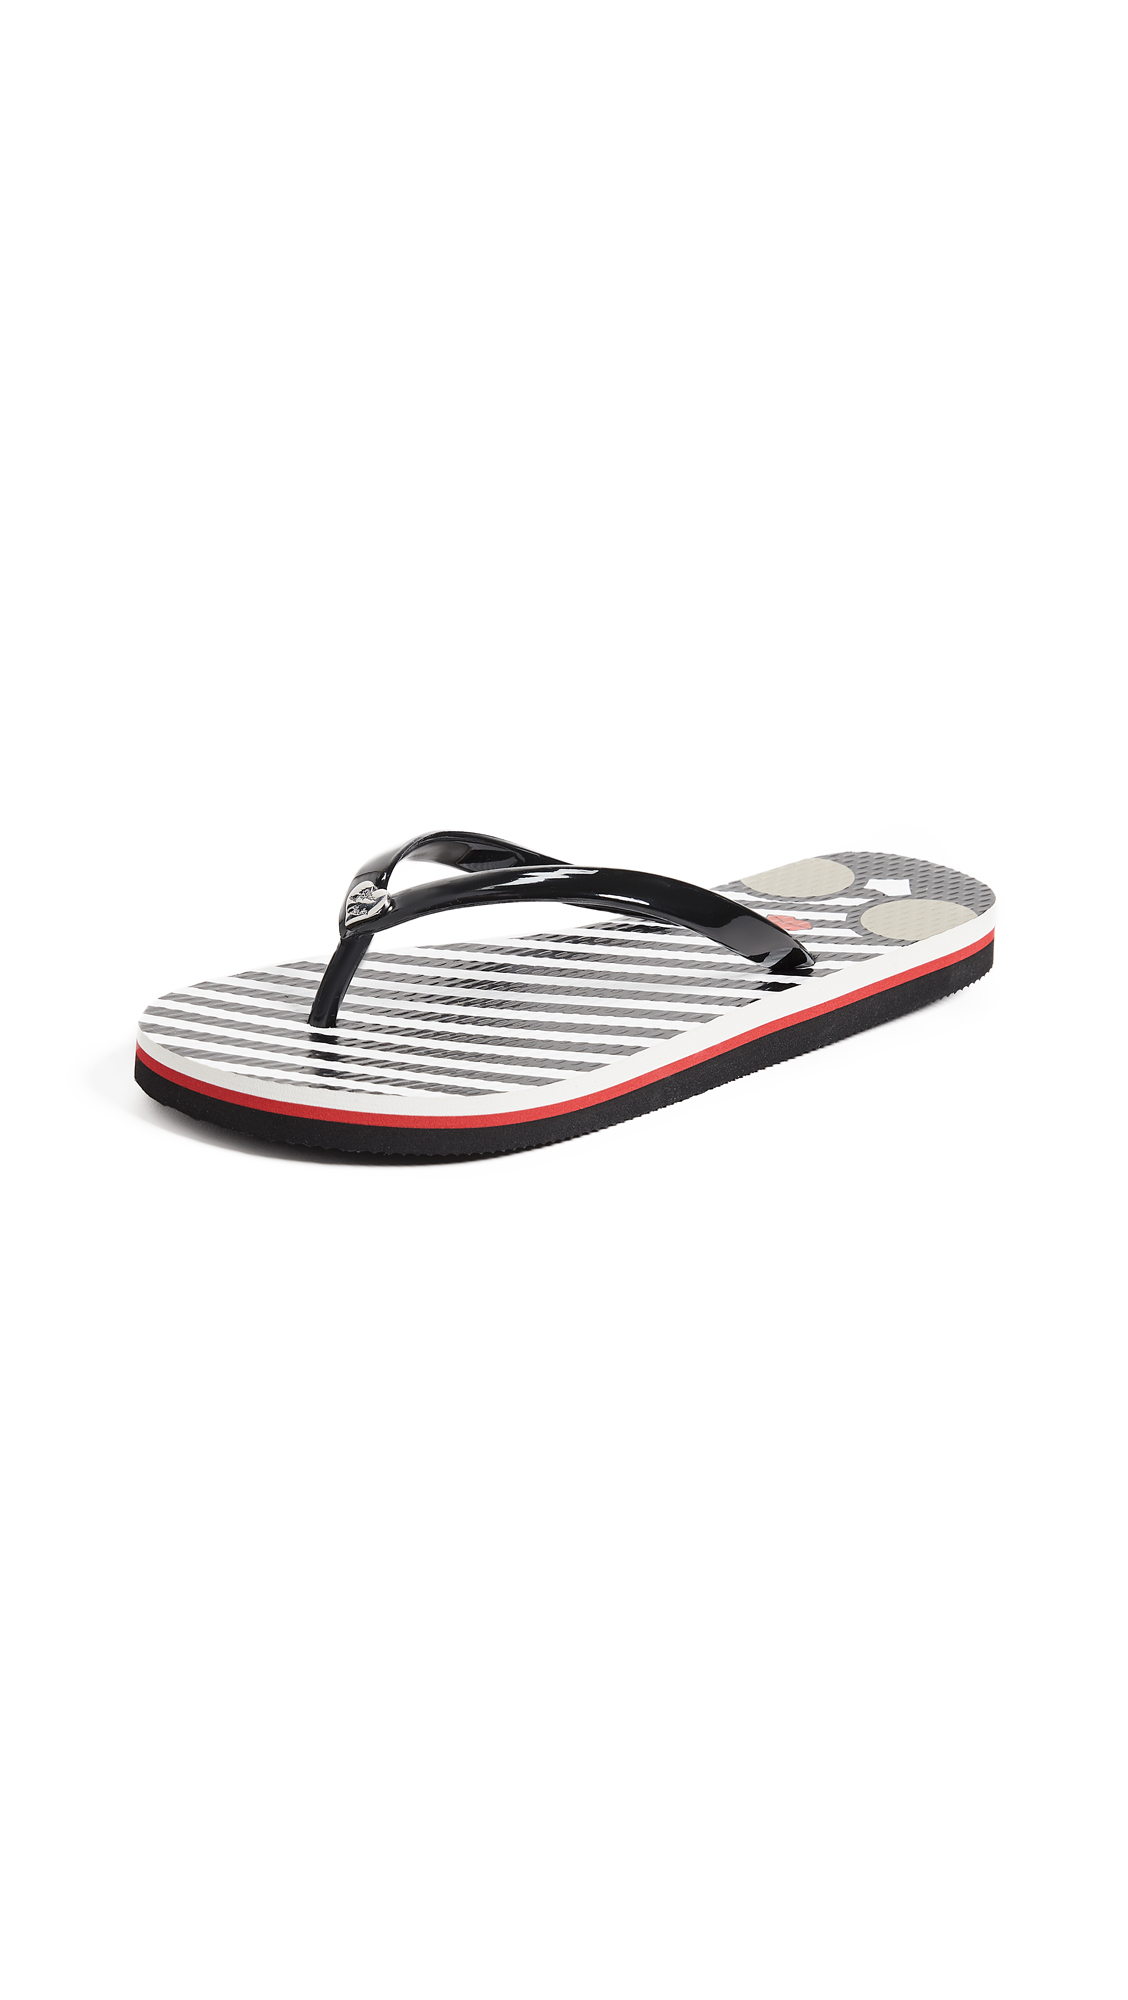 alice + olivia Eva Striped Flip Flops